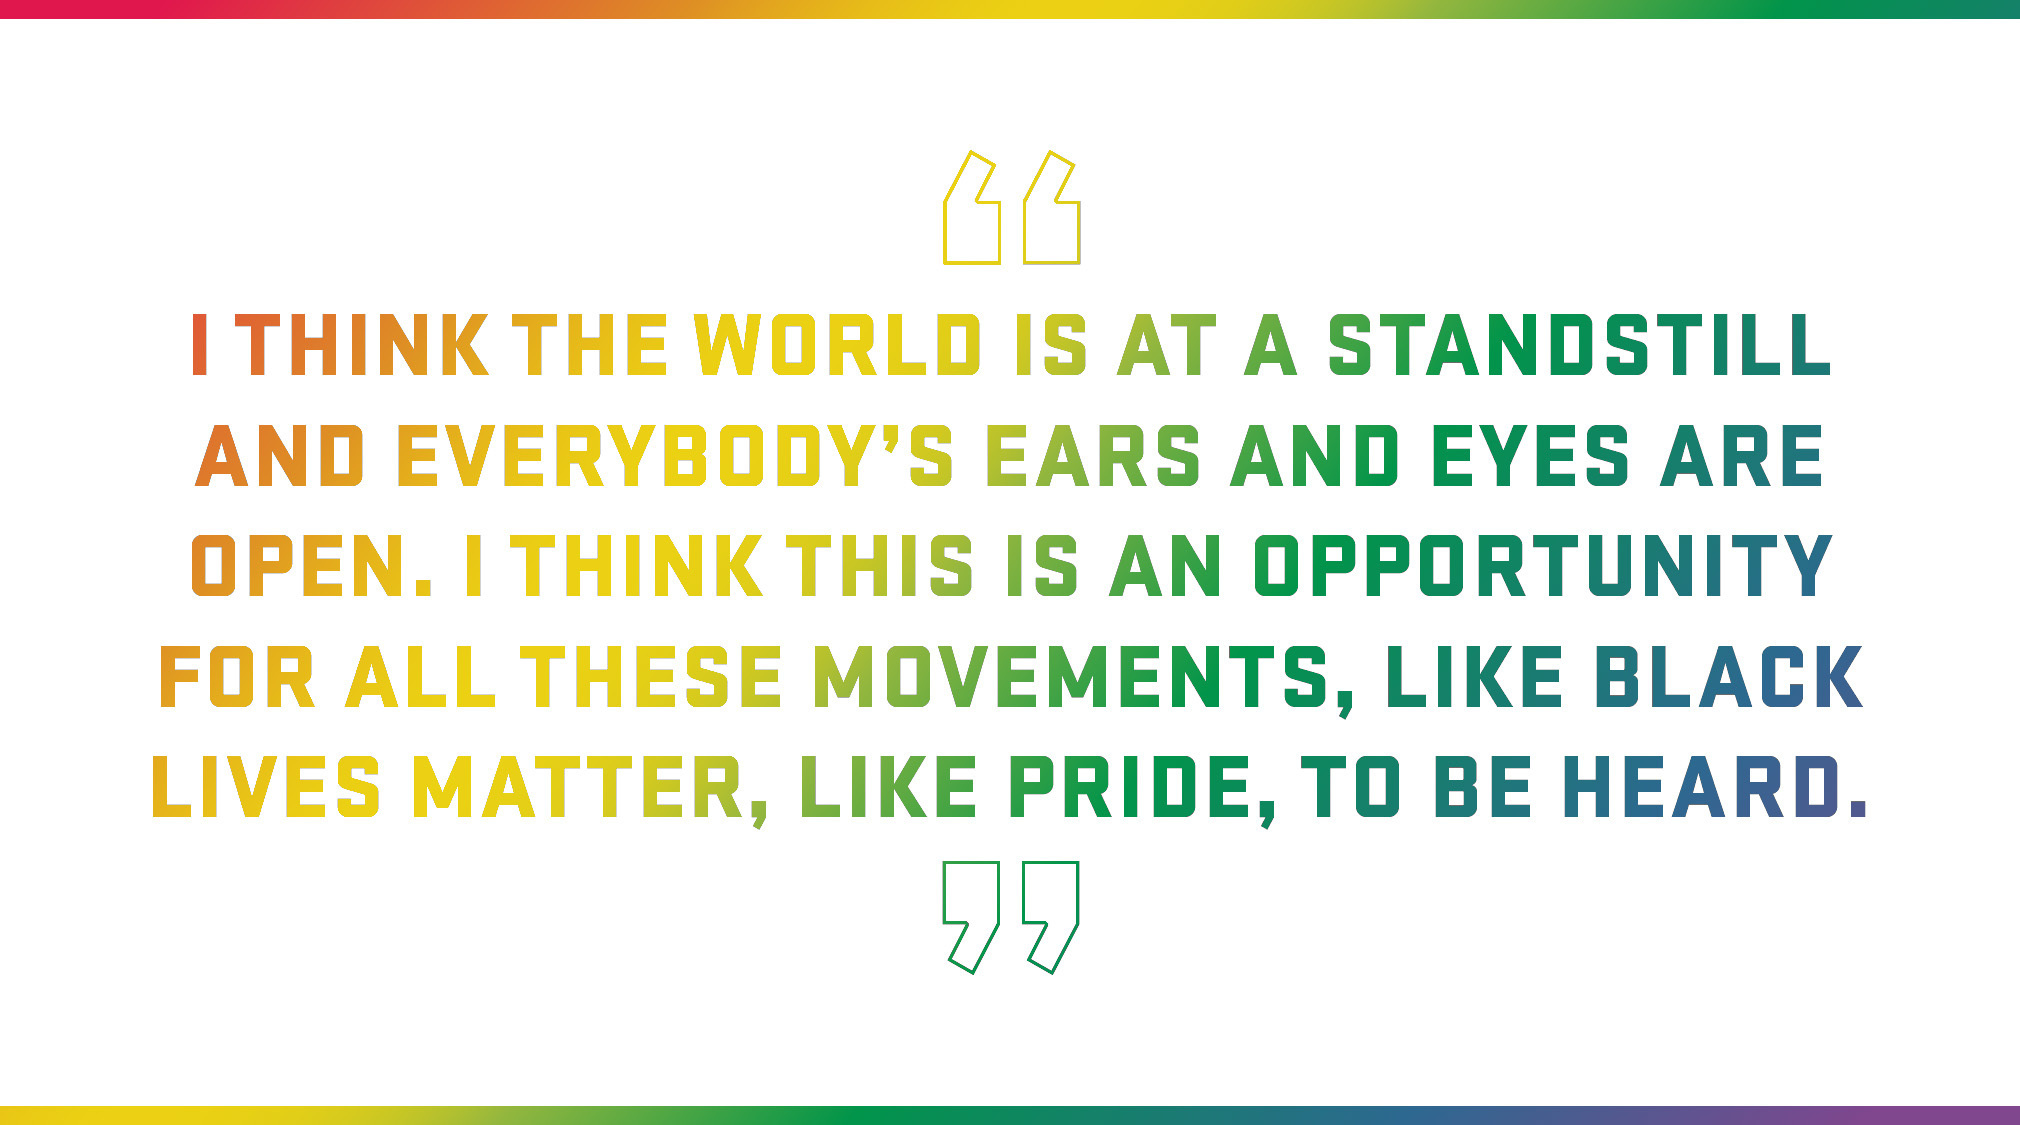 Block Quote: I think the world is at a standstill and everybody's ears and eyes are open. I think this is an opportunity for all these movements, like Black Lives Matter, like Pride, to be heard.